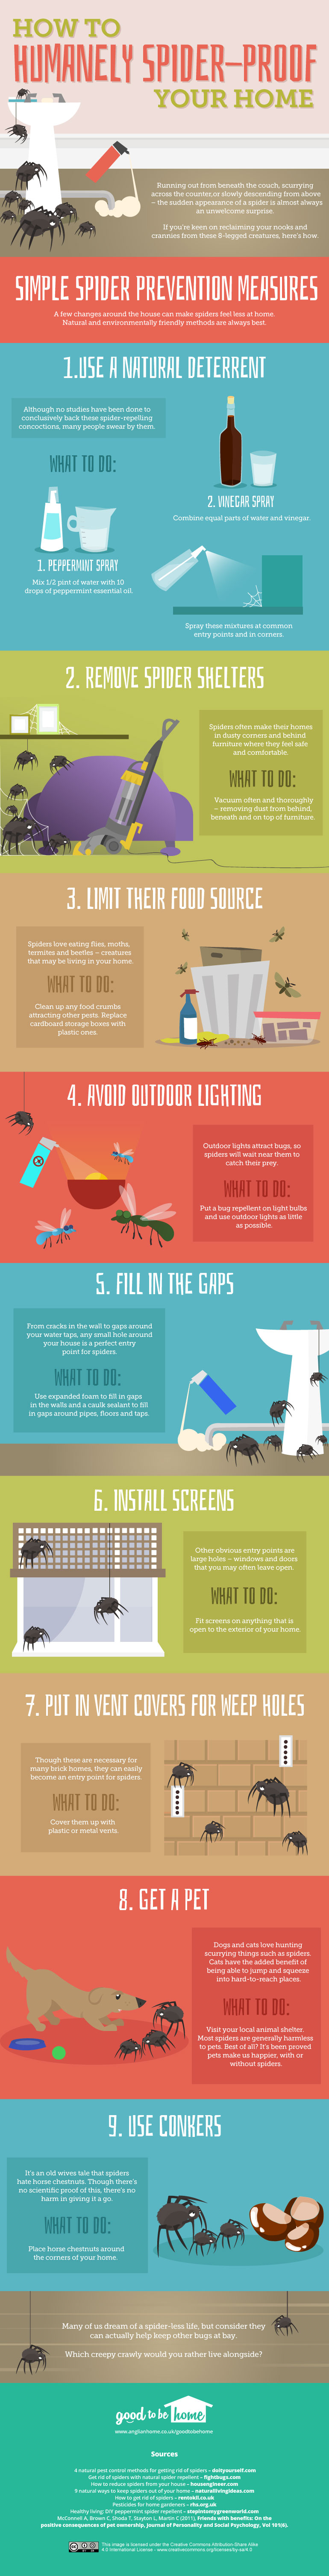 Spiders can be helpful in getting rid of pesky bugs, but they don't need to take over the home. How to Get Rid of Spiders from Your Home Infograpic at tipsaholic.com #spiders #spider #bugs